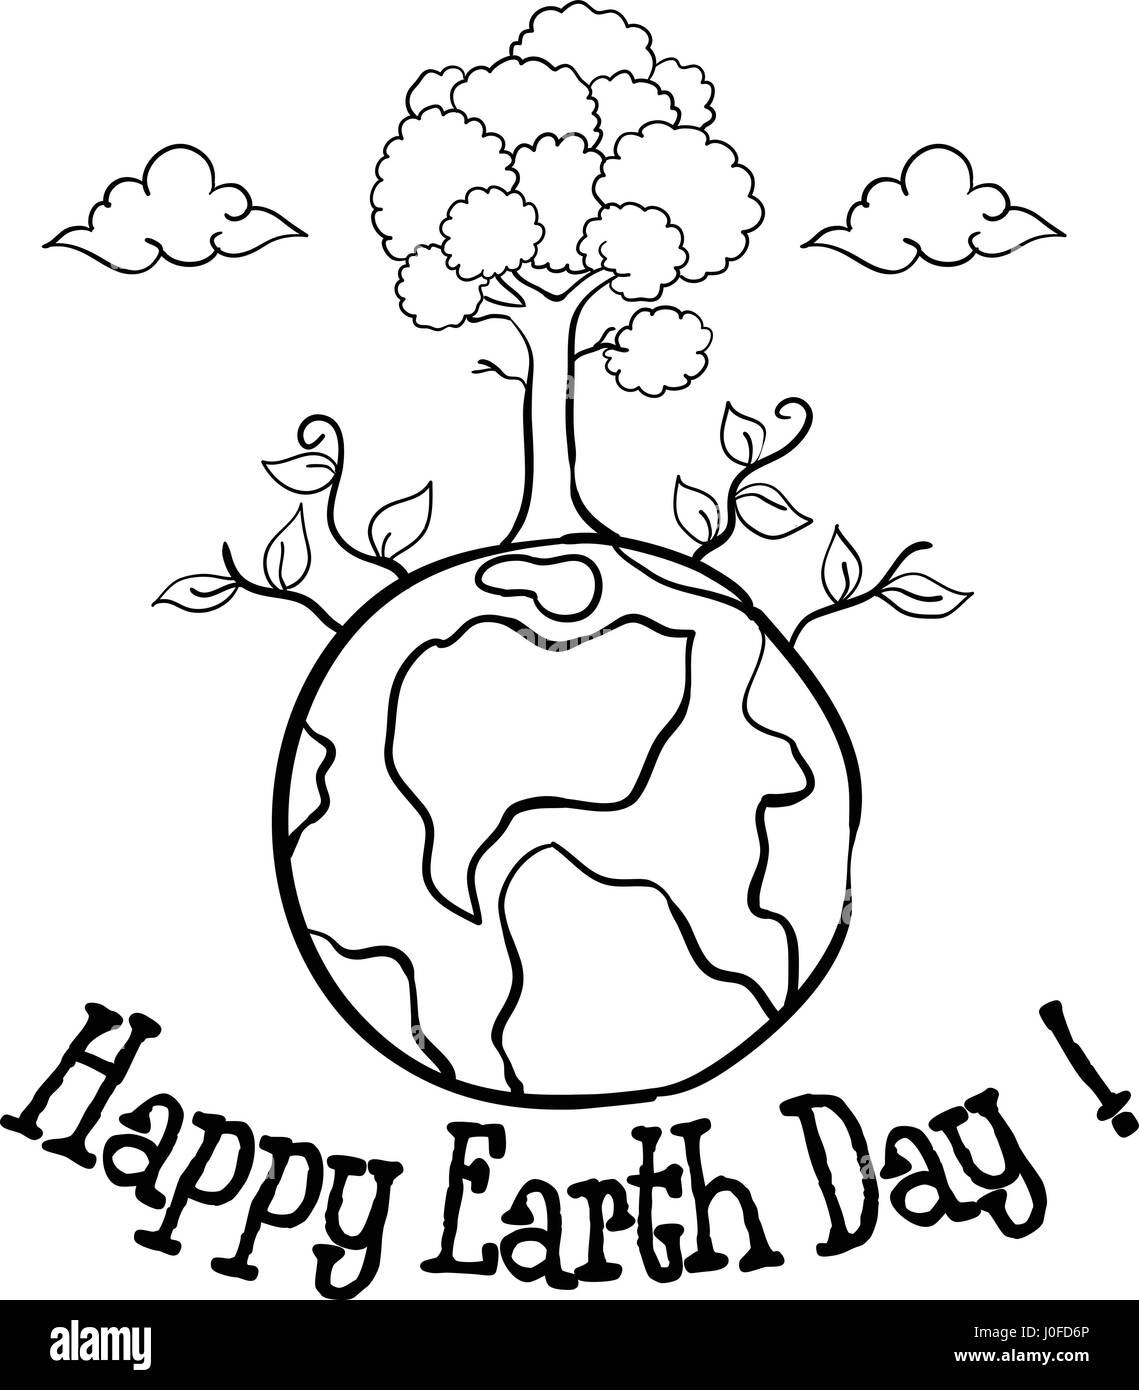 Happy Earth Day with tree hand draw - Stock Image